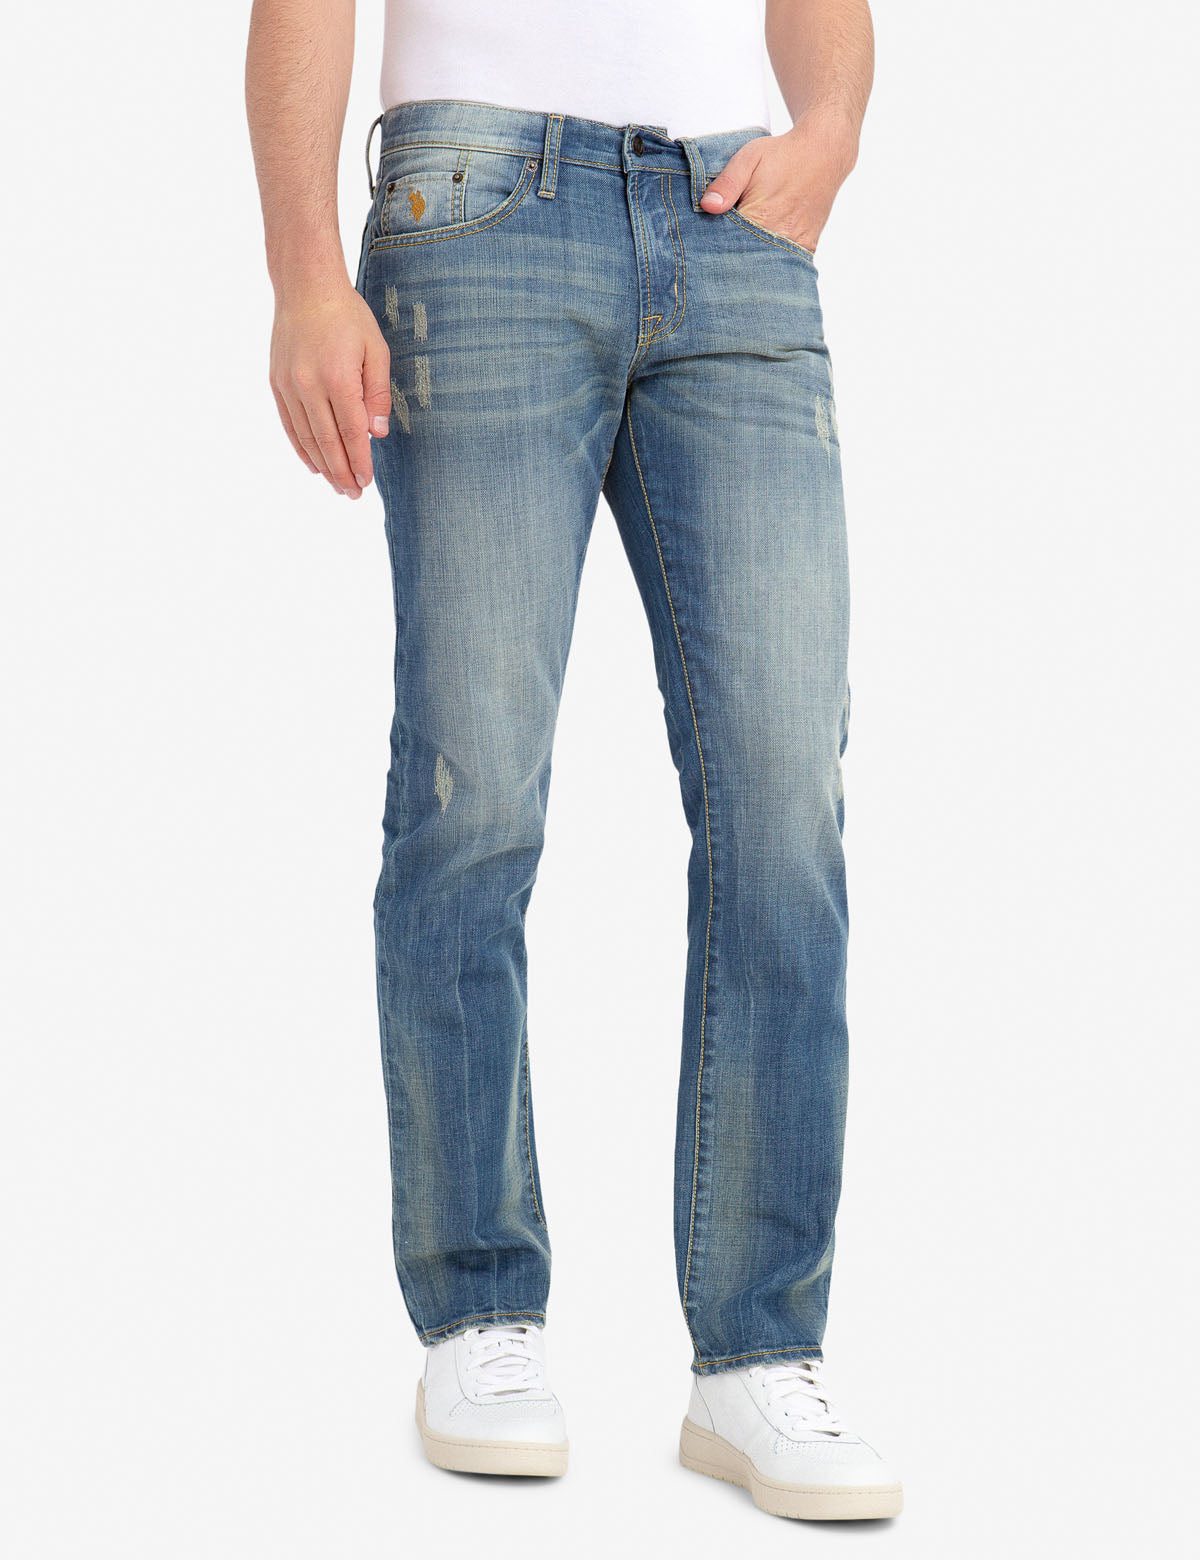 SLIM STRAIGHT 5 POCKET JEANS - U.S. Polo Assn.